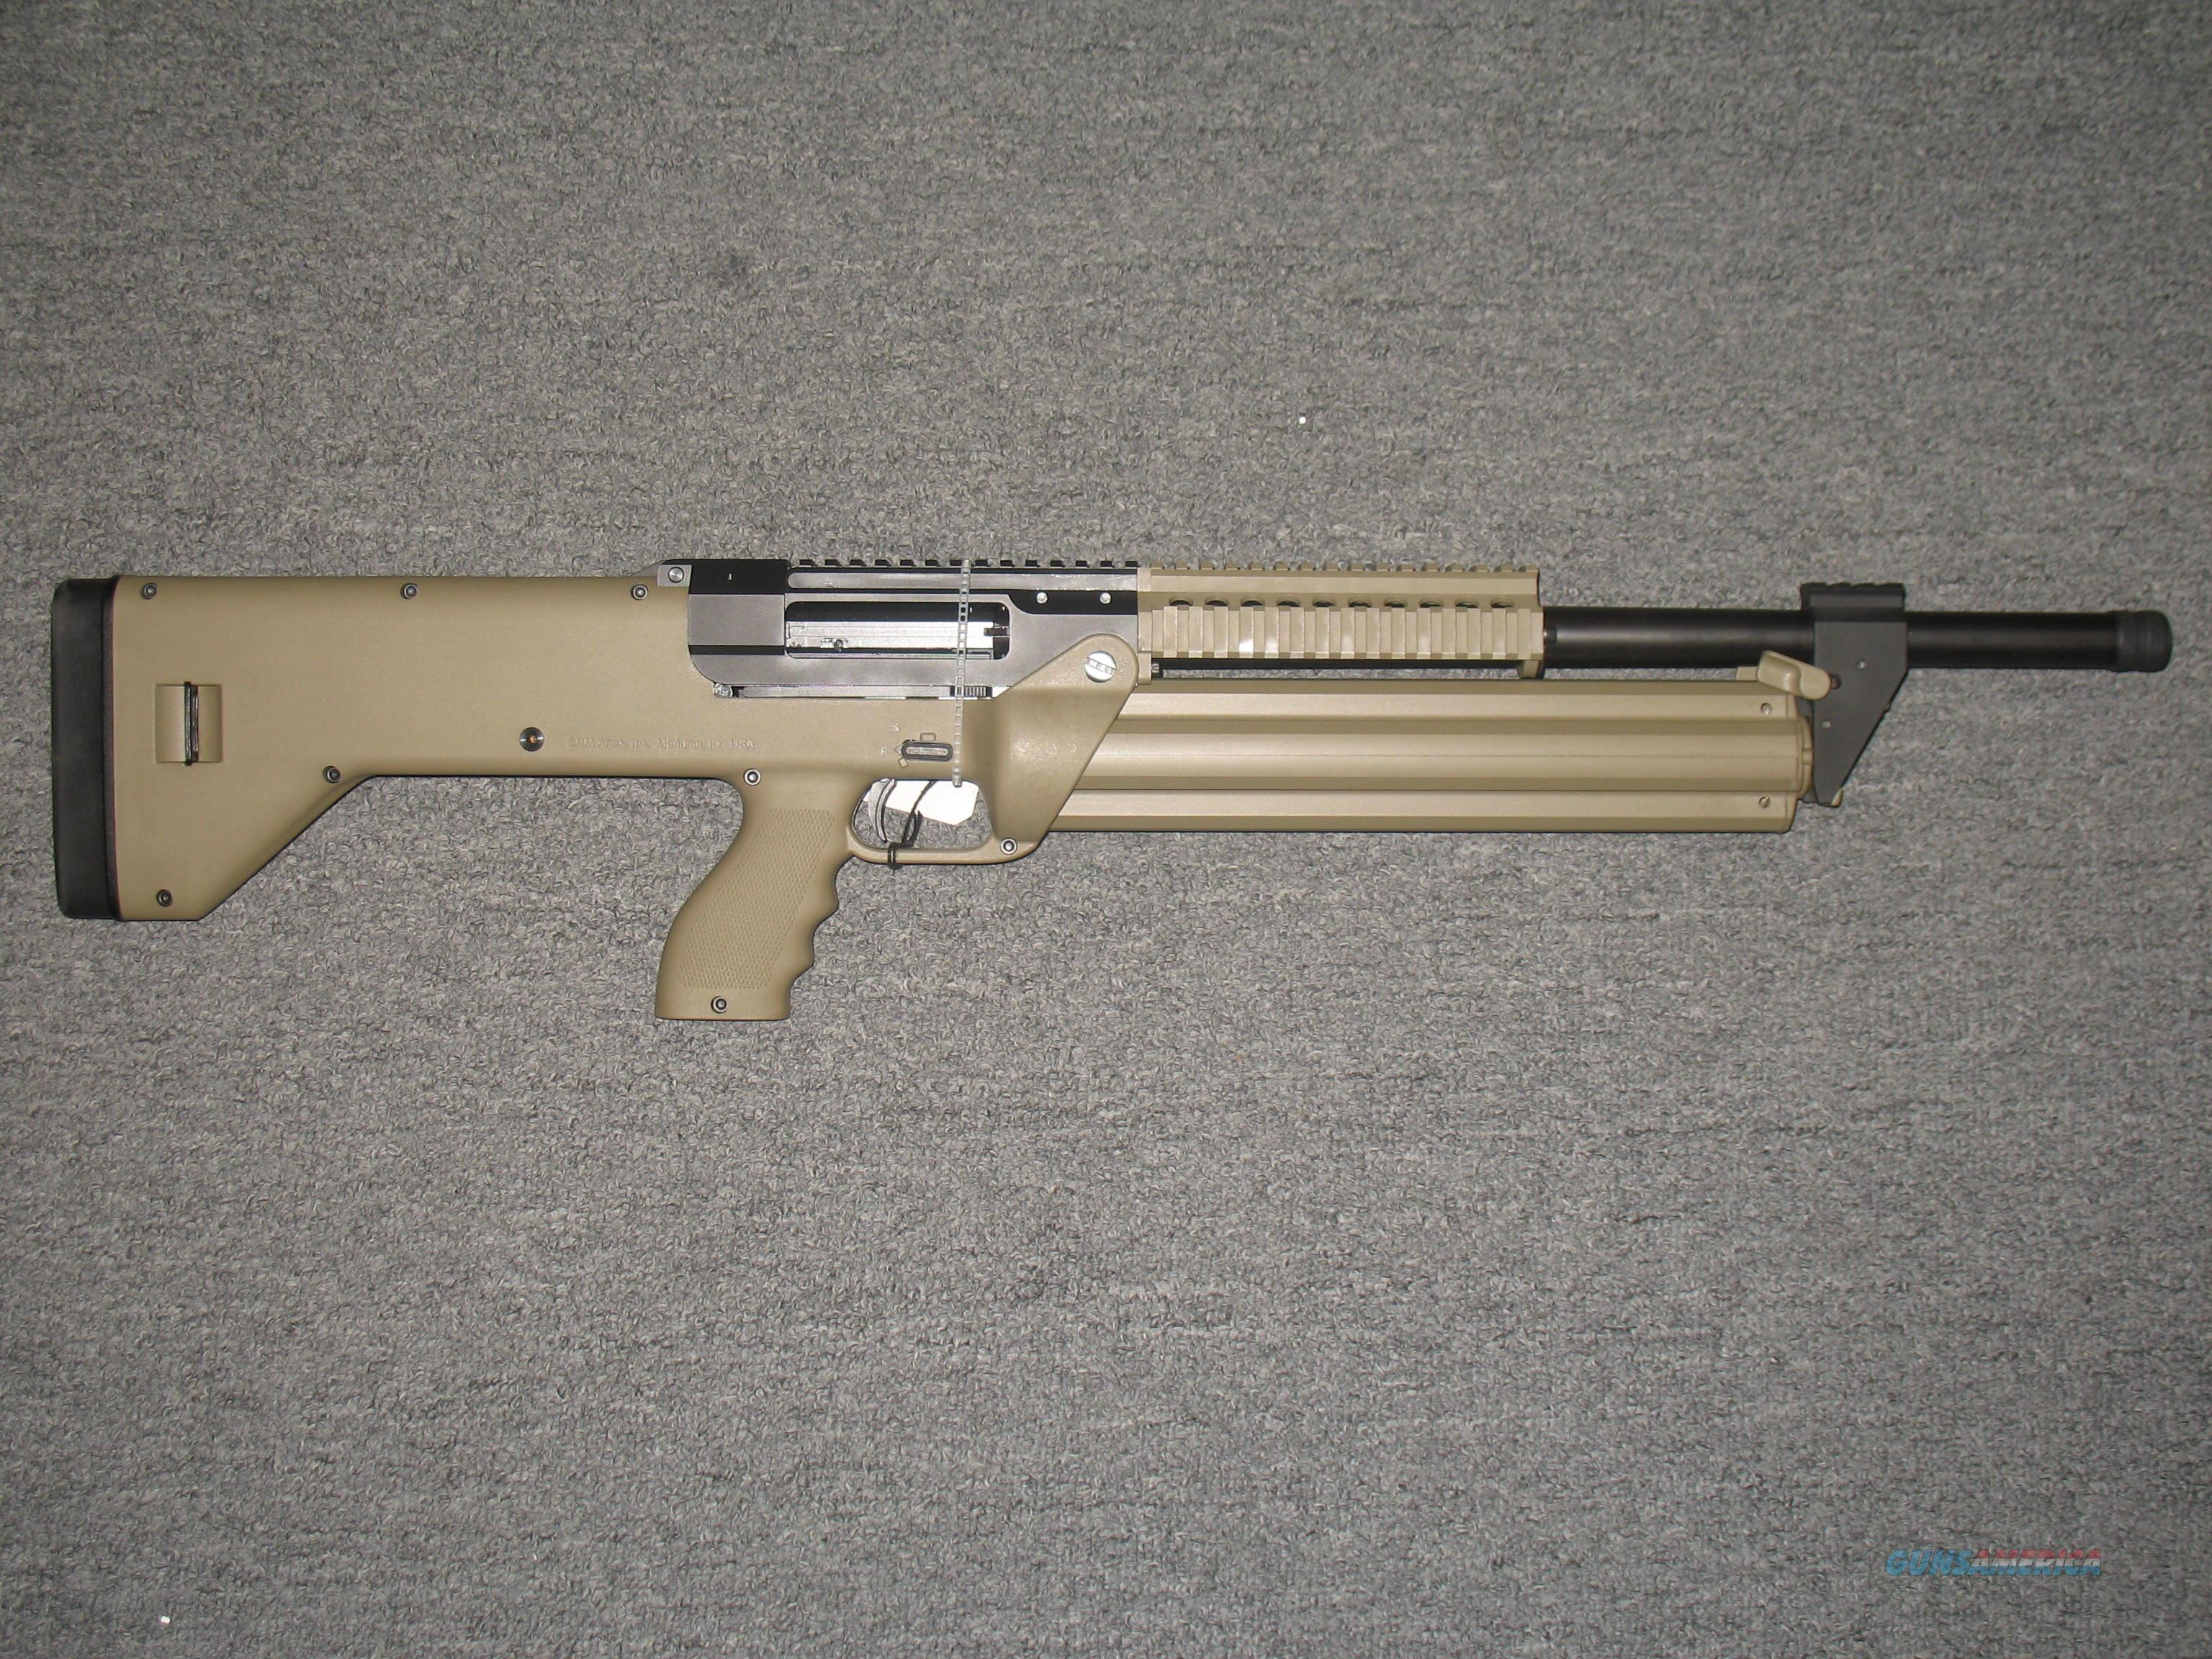 SRM Arms M1216 (12ga with rotating magazine) for sale M1216